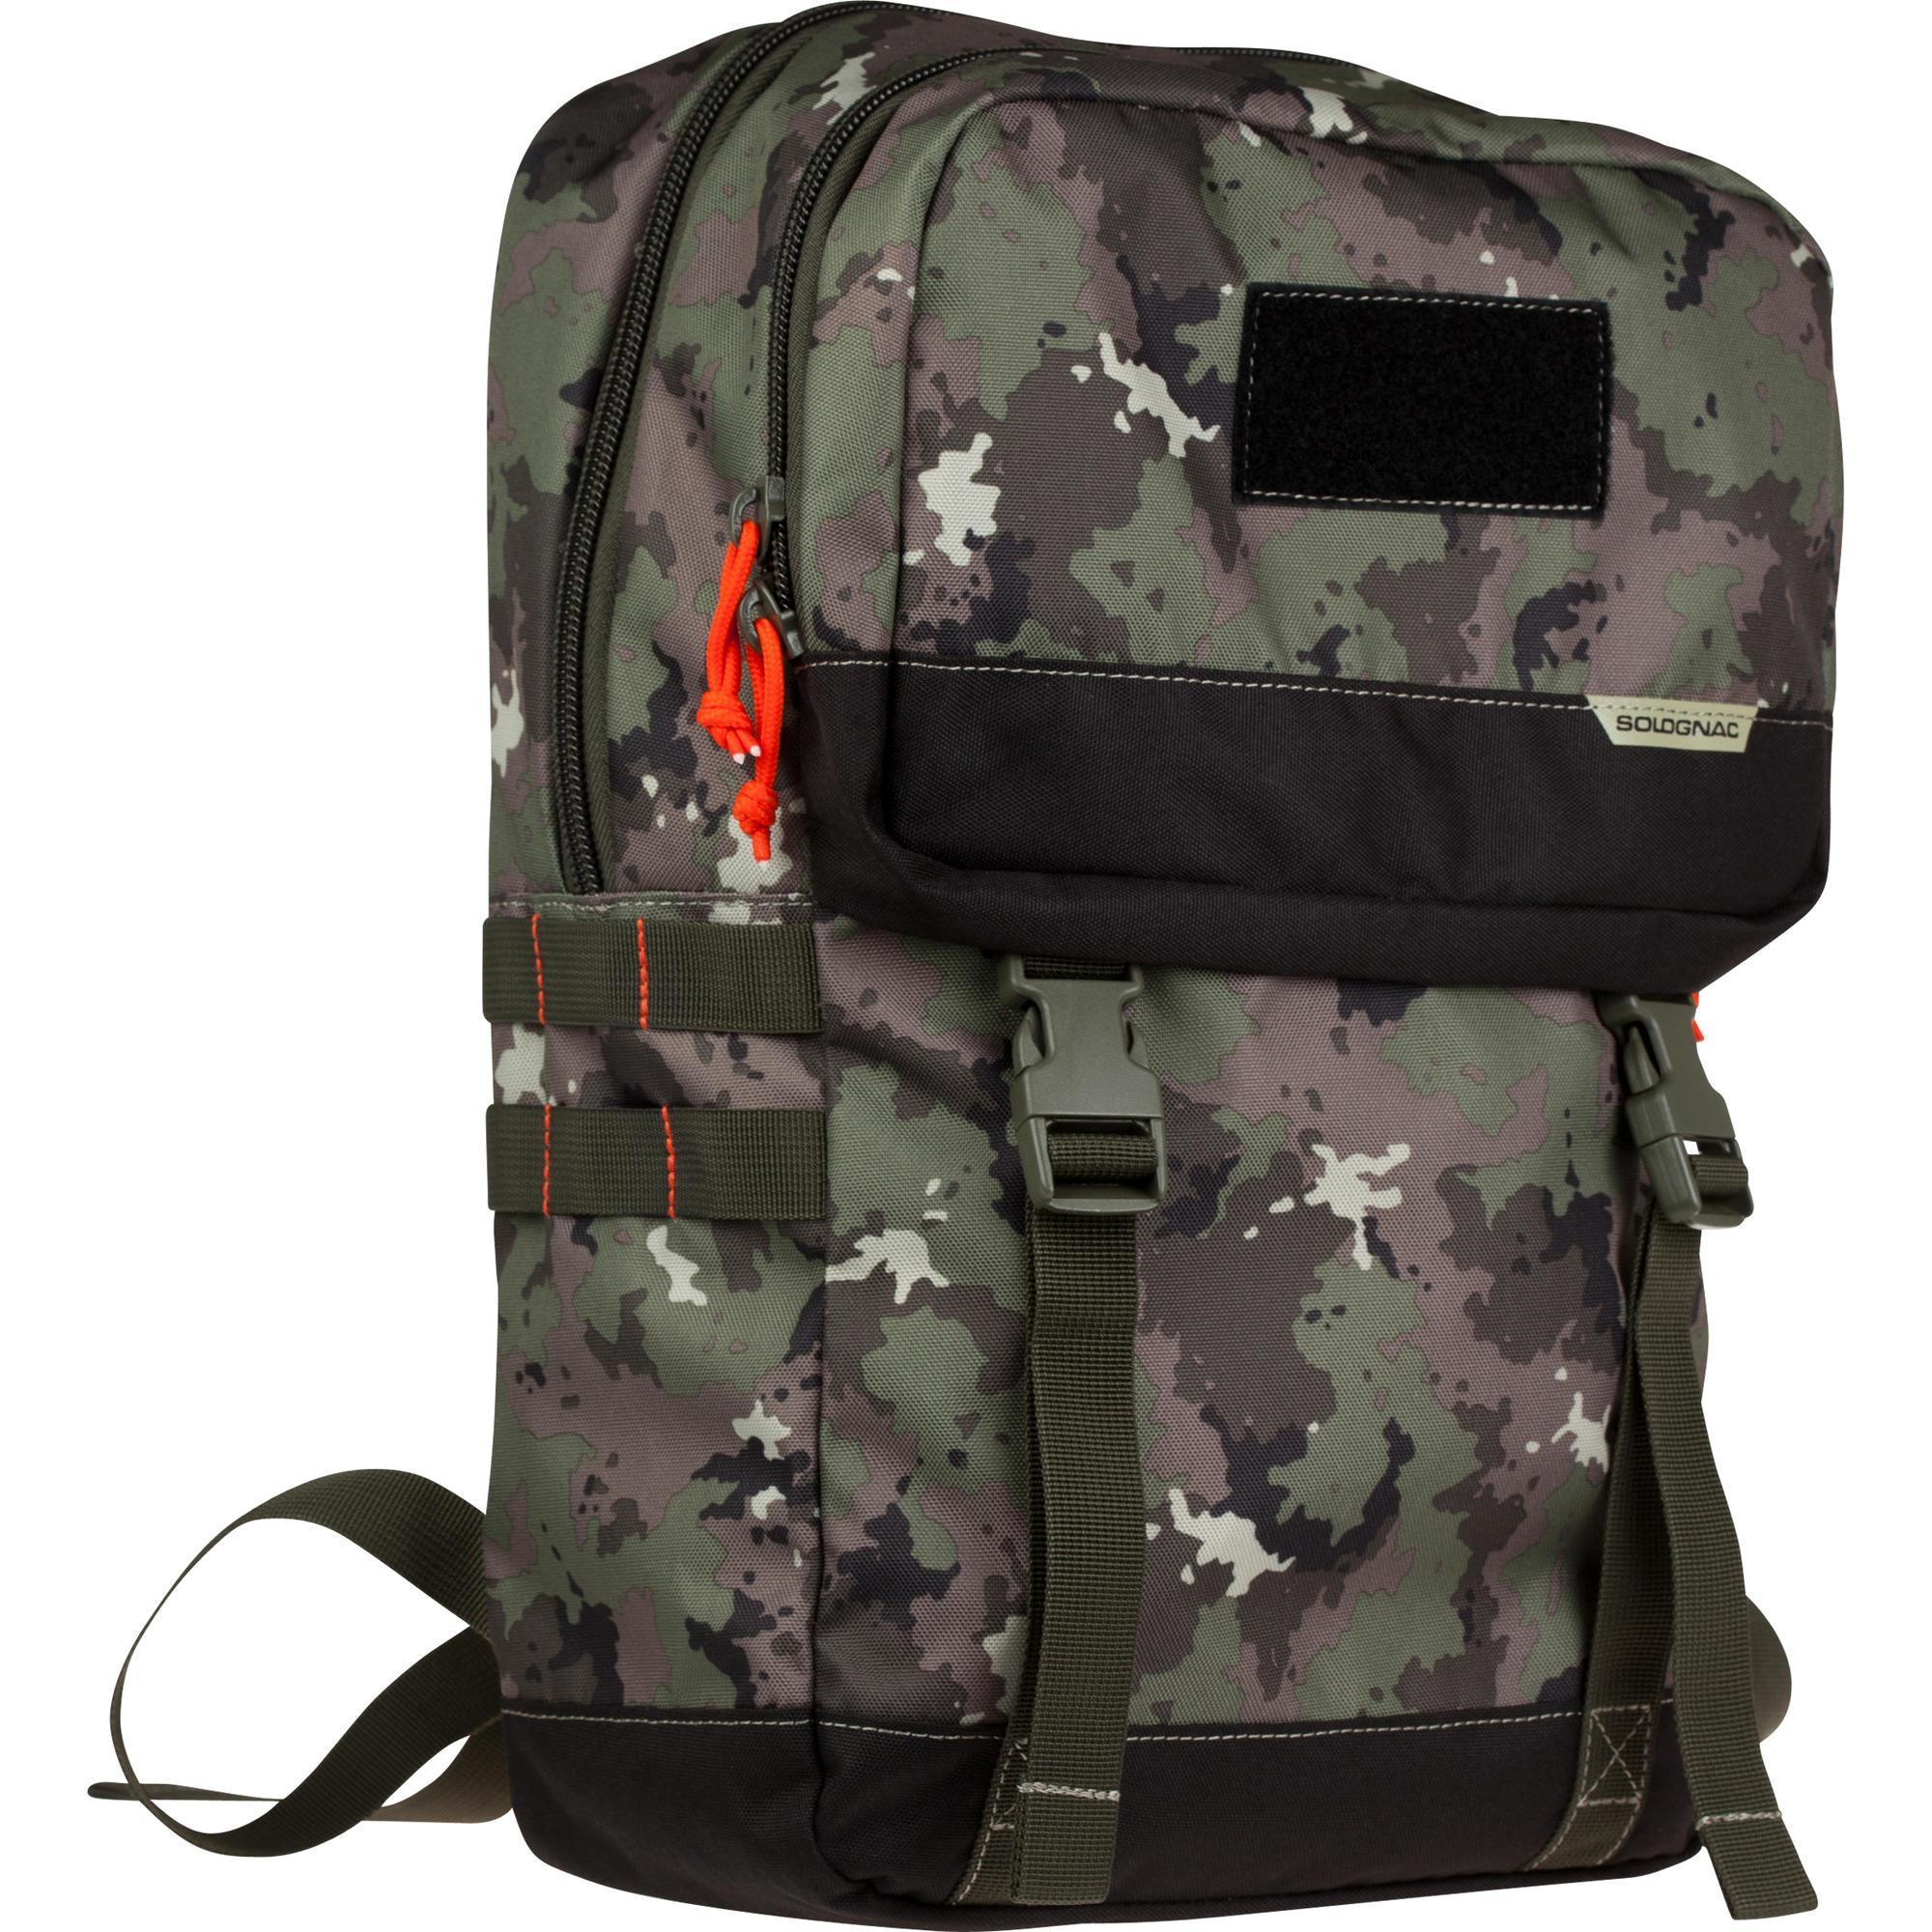 dcbe20d72f X-ACCESS BACKPACK 20 LITRES CAMOUFLAGE ISLAND GREEN